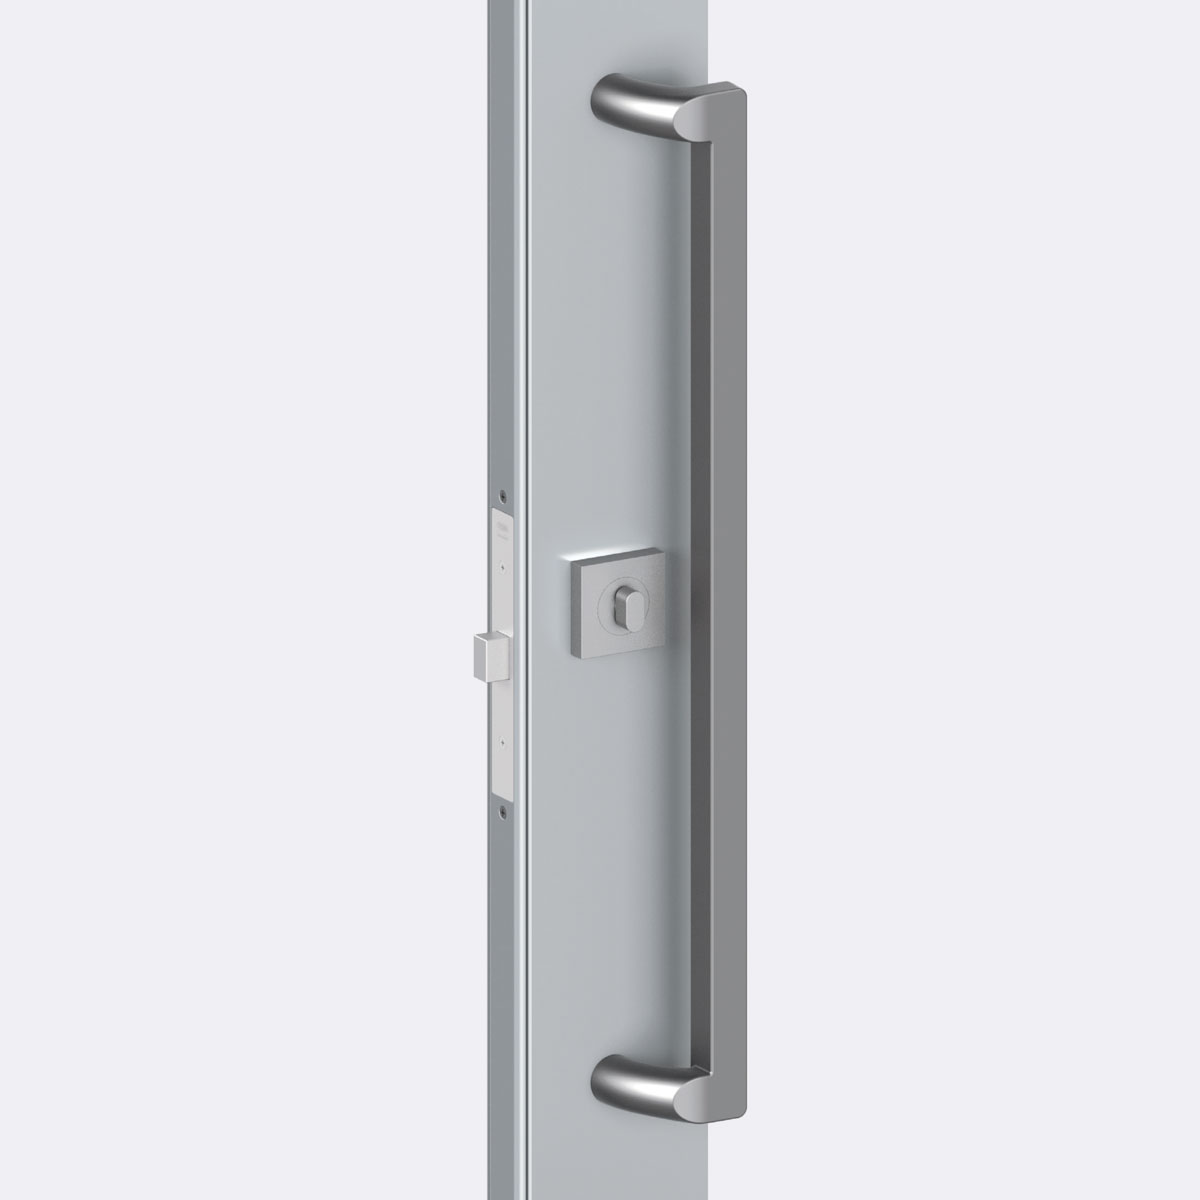 Square-form handle